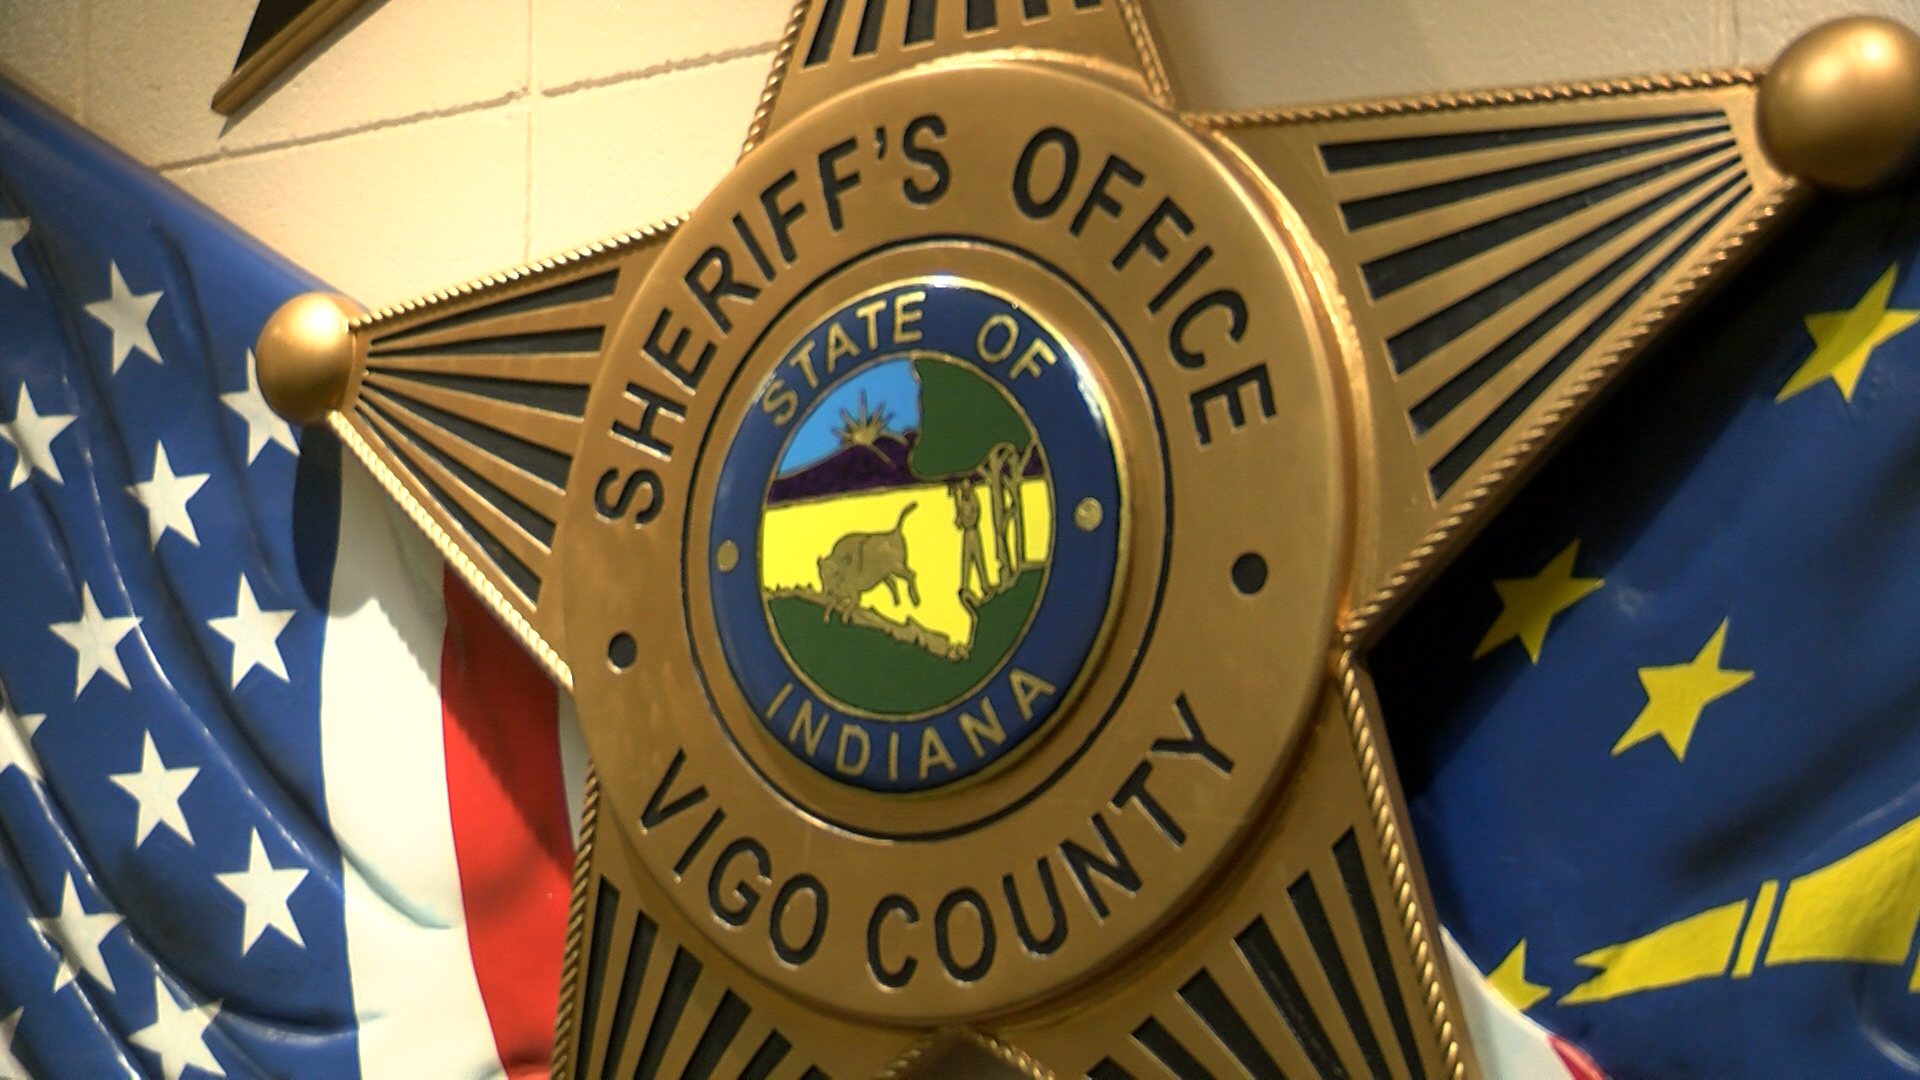 vigo county sheriffs office_1481834331951.jpg